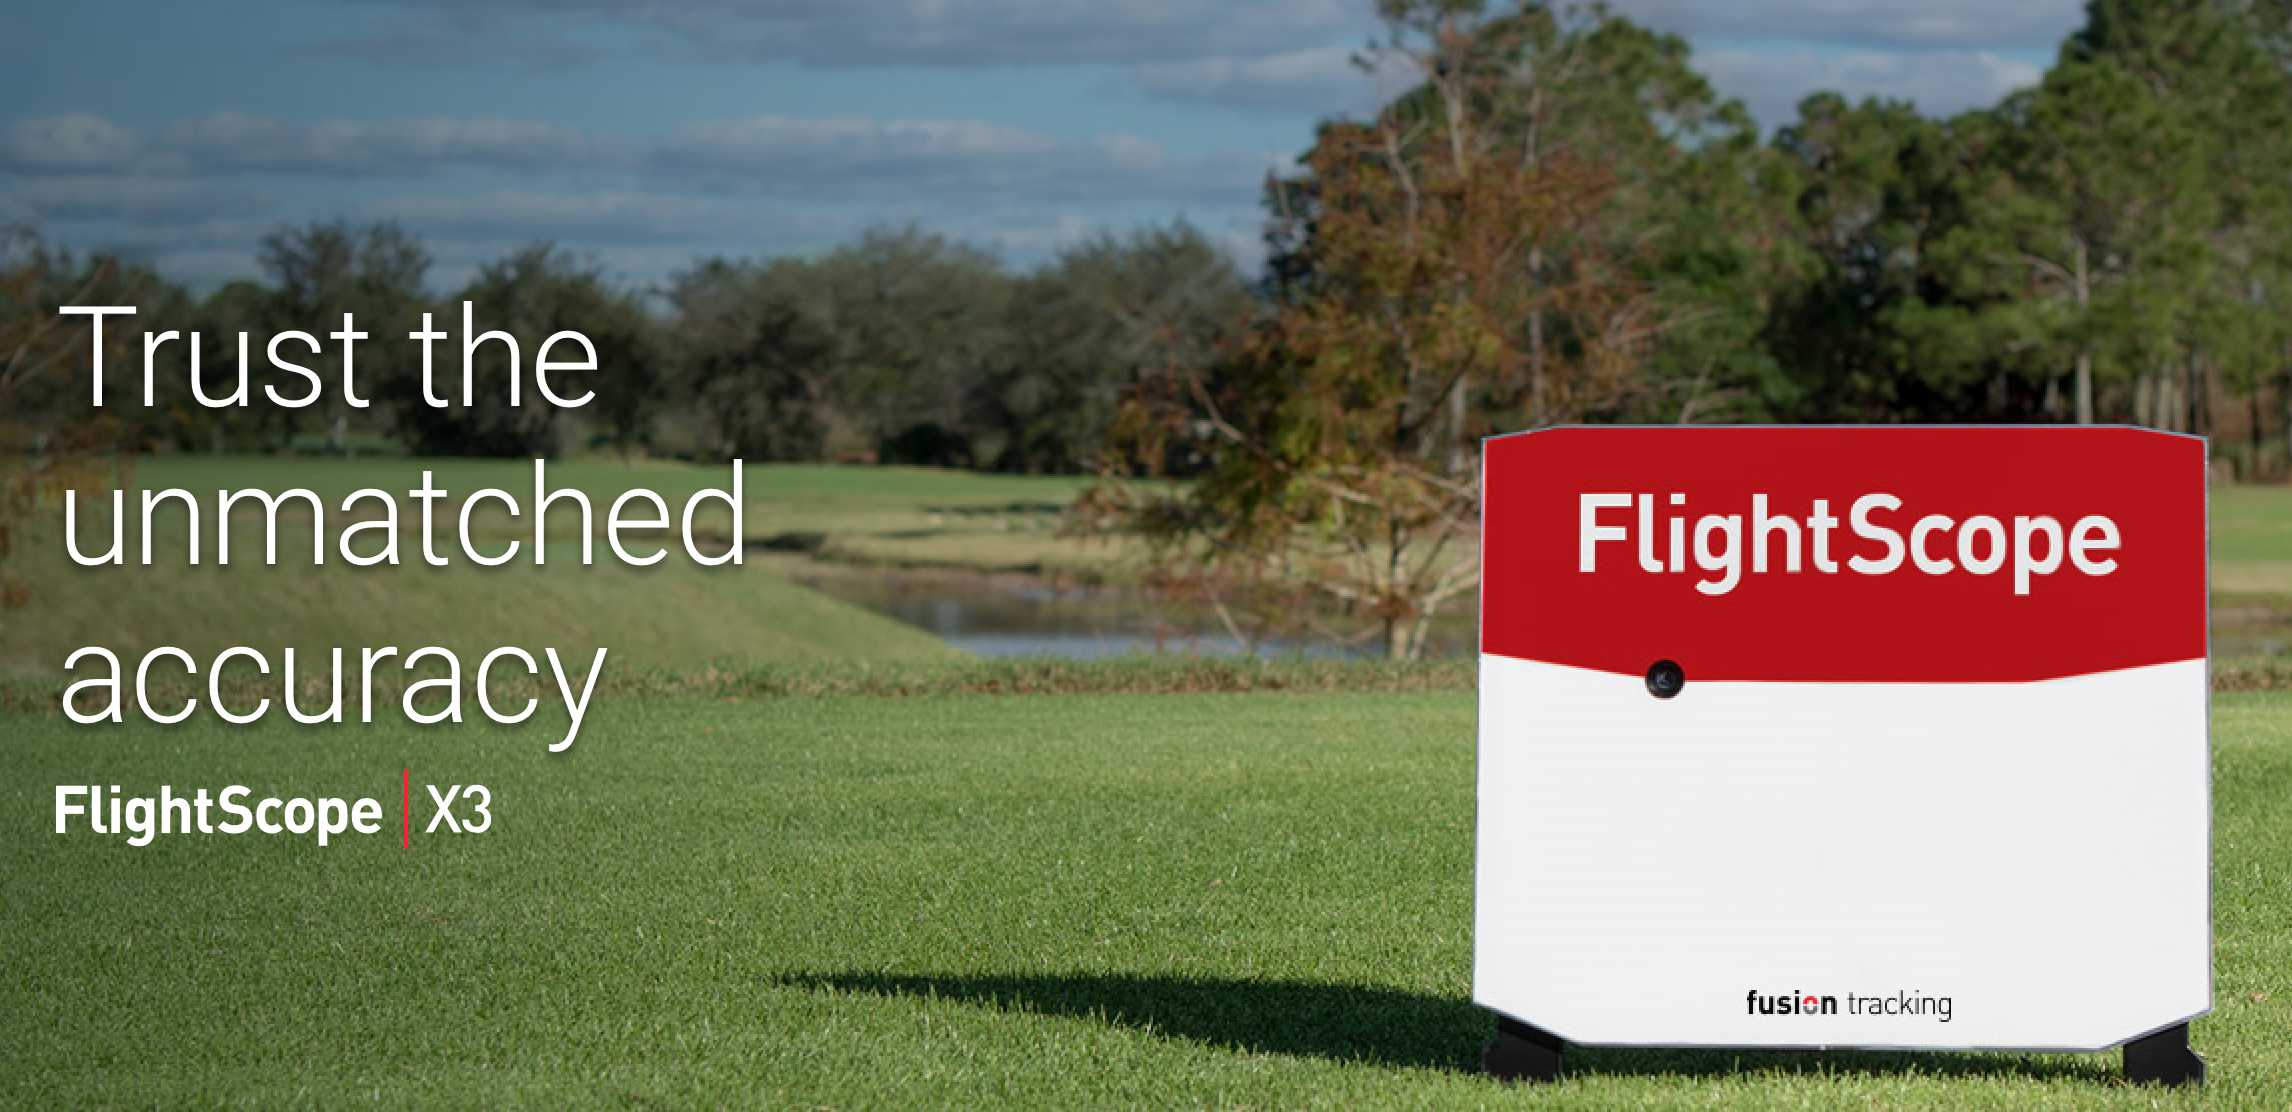 The FlightScope X3 is available now for your custom-fitting at DeMane Golf.